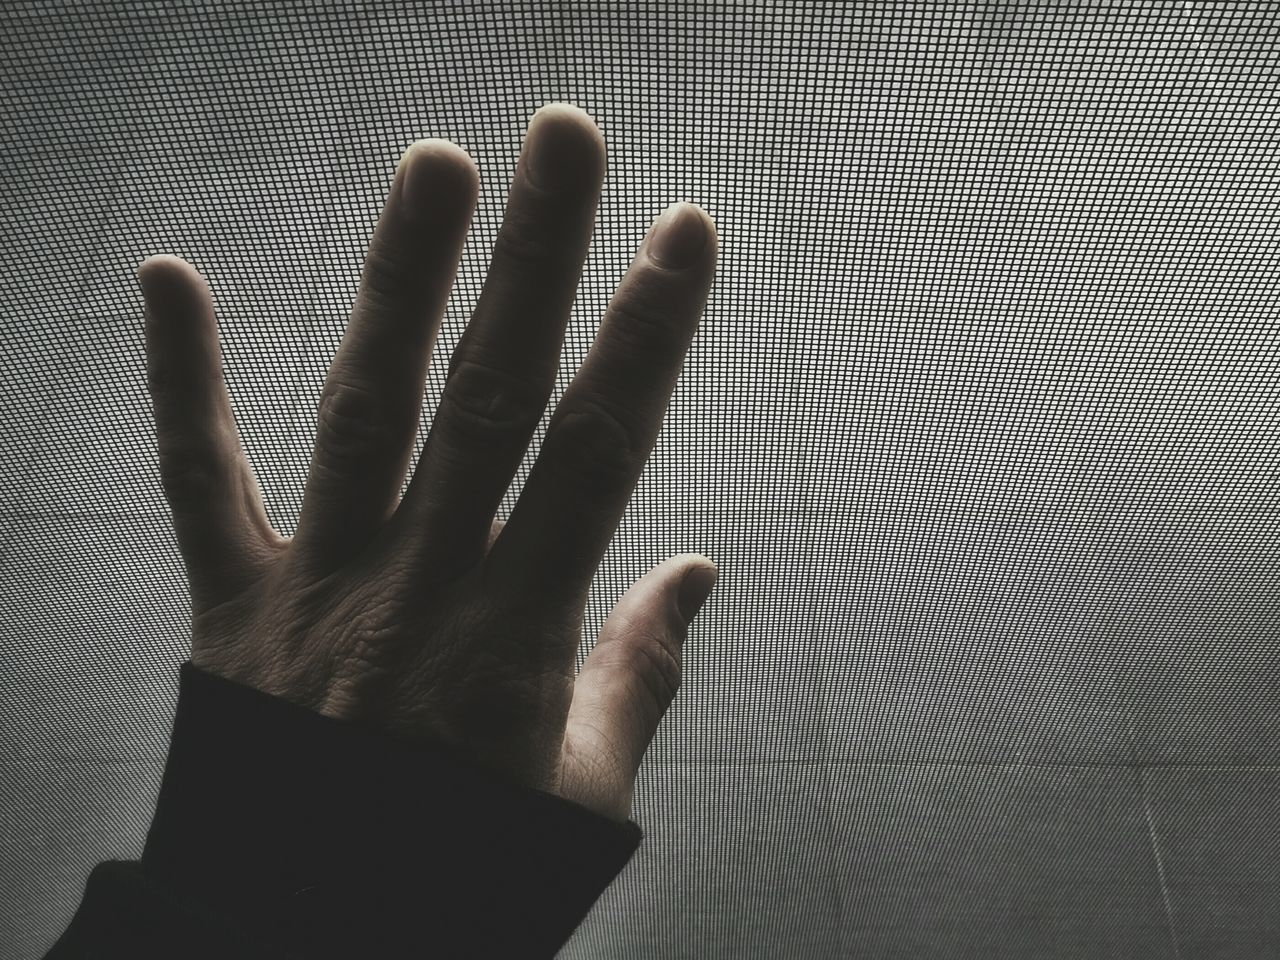 Cropped image of man hand against flooring